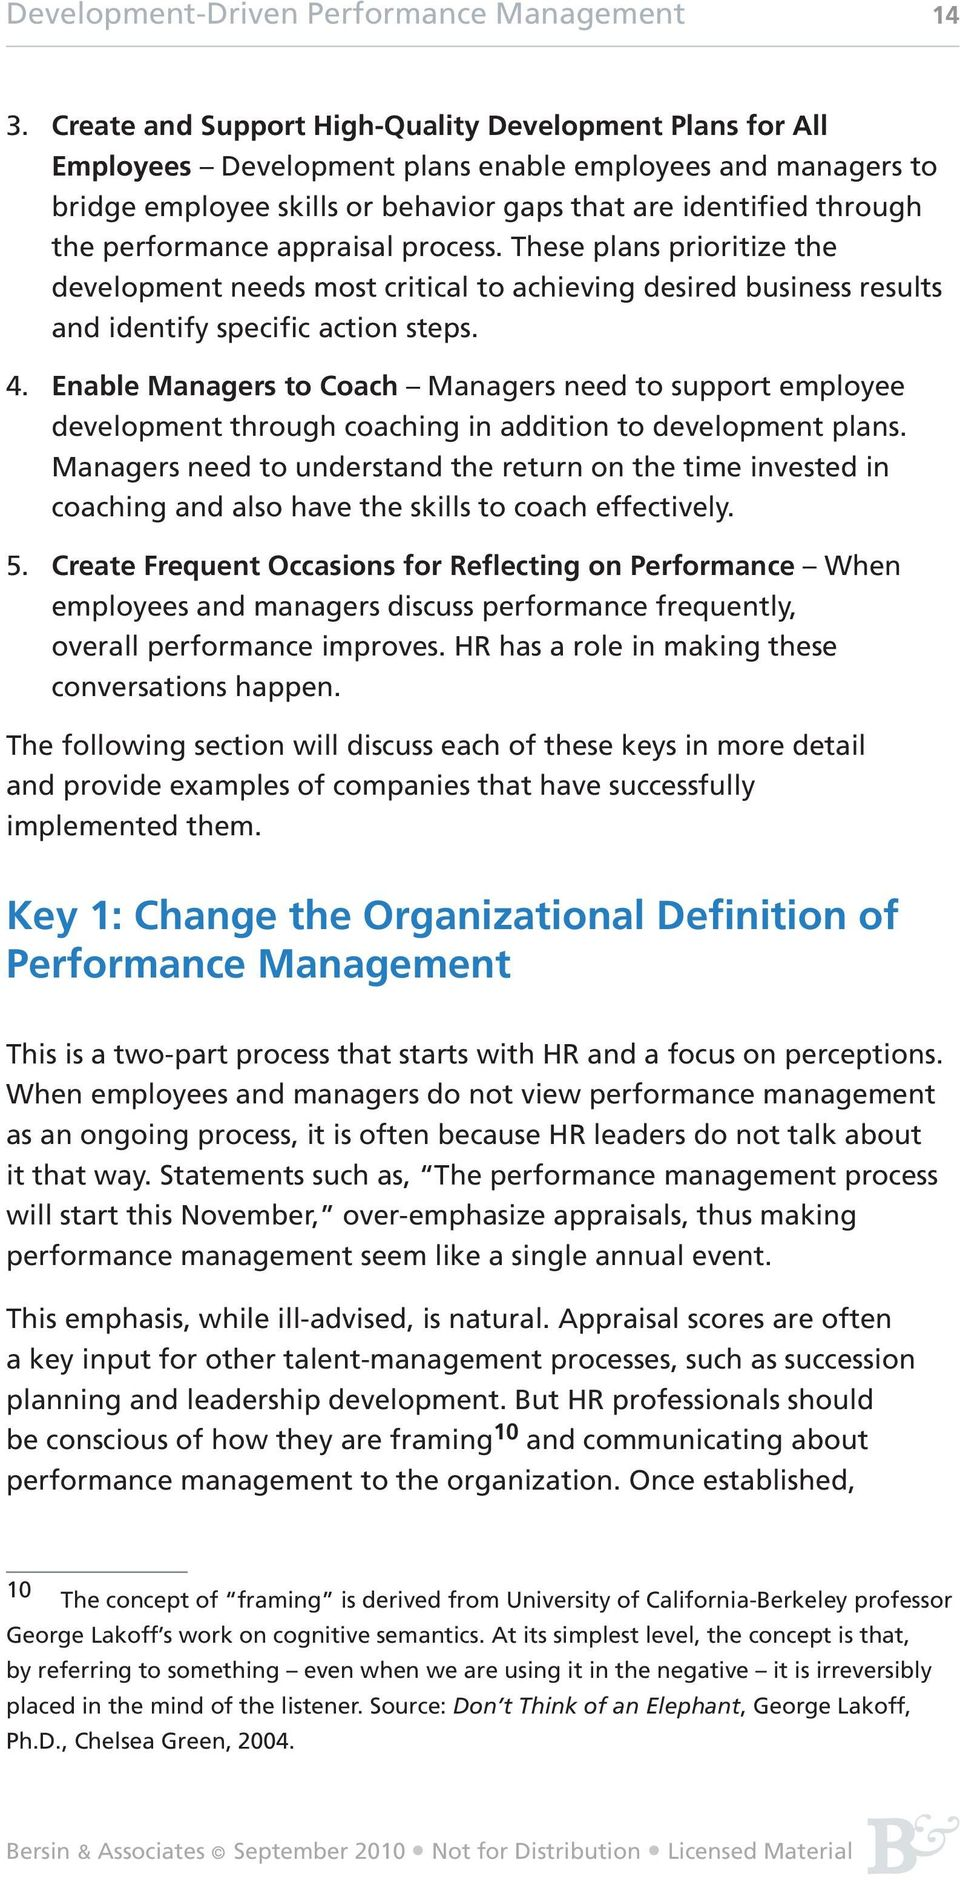 Development-Driven Performance Management - PDF